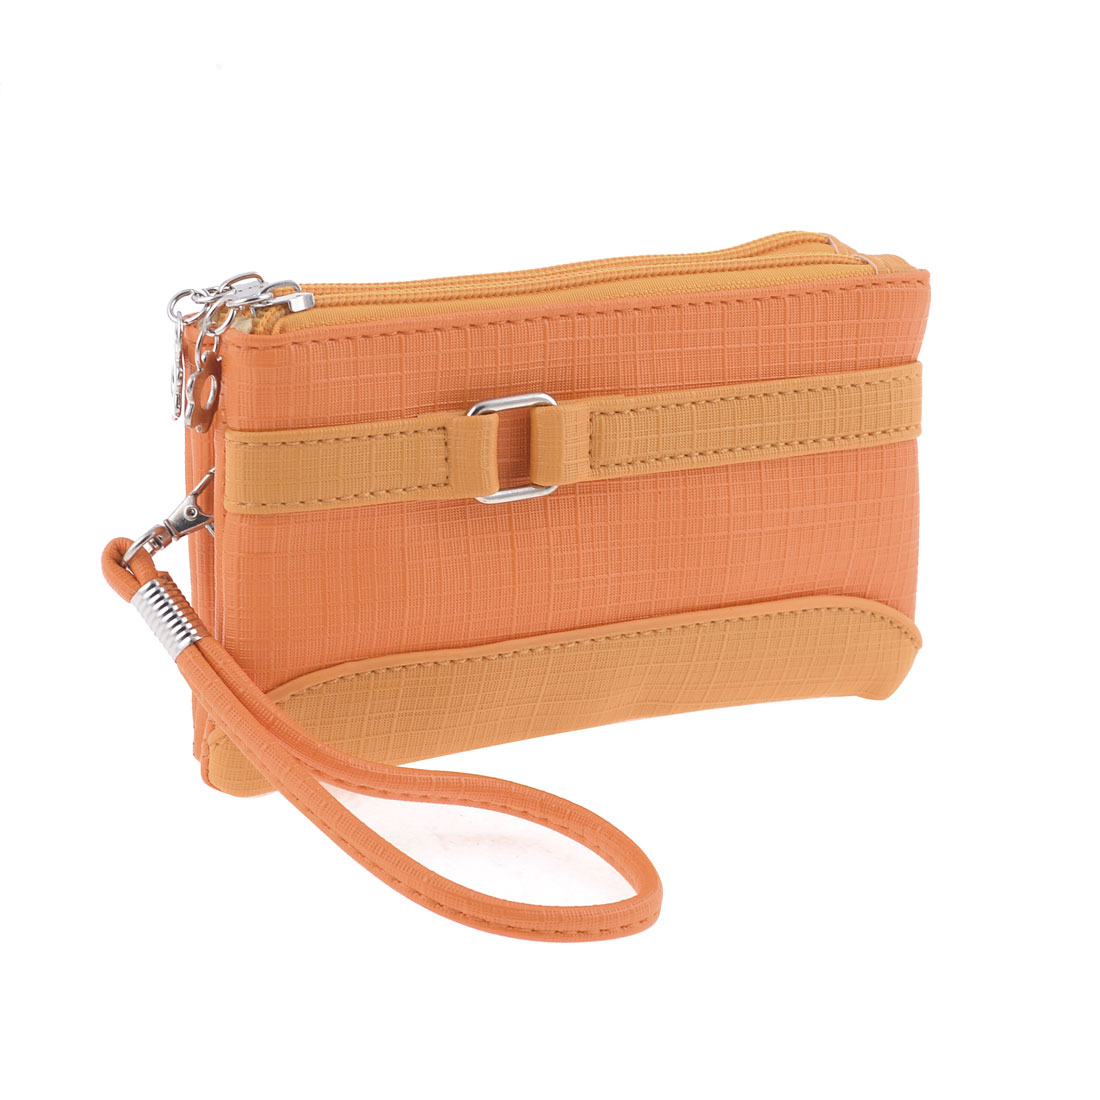 Lady Women Lobster Clip Detachable Hand Strap Orange Yellow Purse Bag Wallet